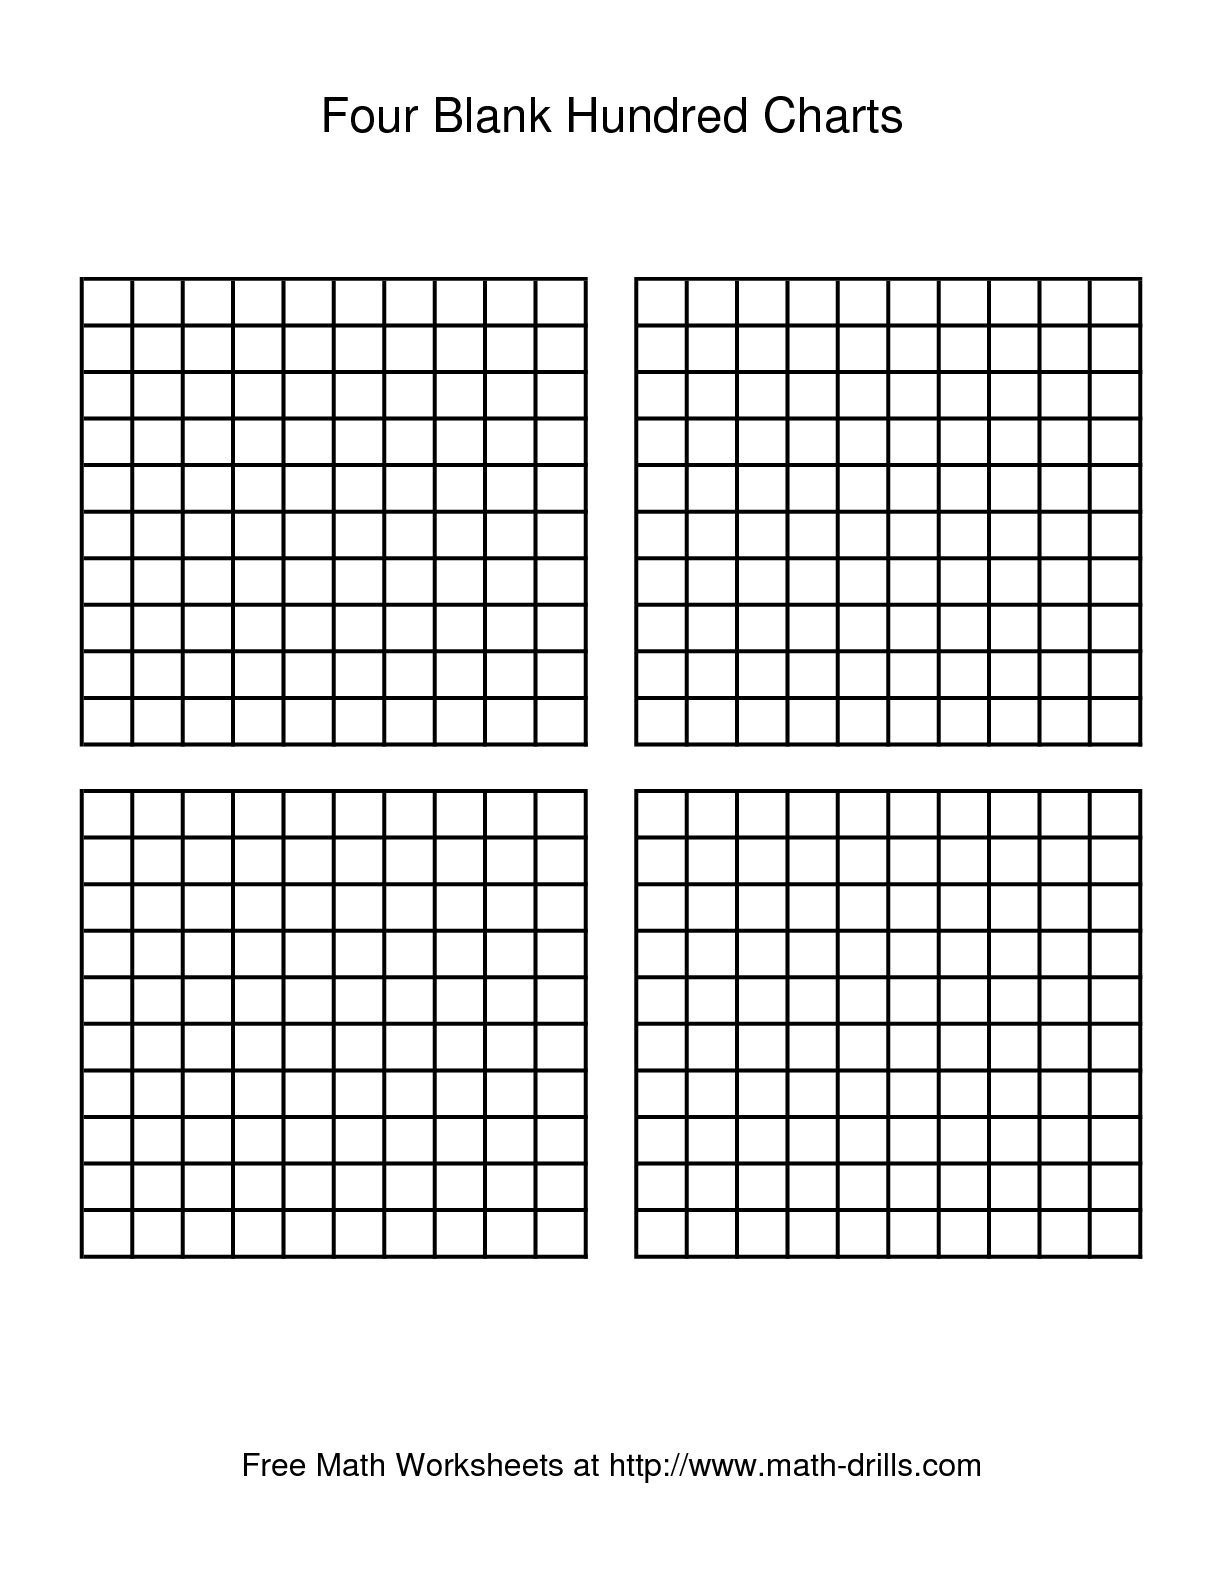 The Four Blank Hundred Charts Math Worksheet From The Number Sense - Free Printable Blank 1 120 Chart